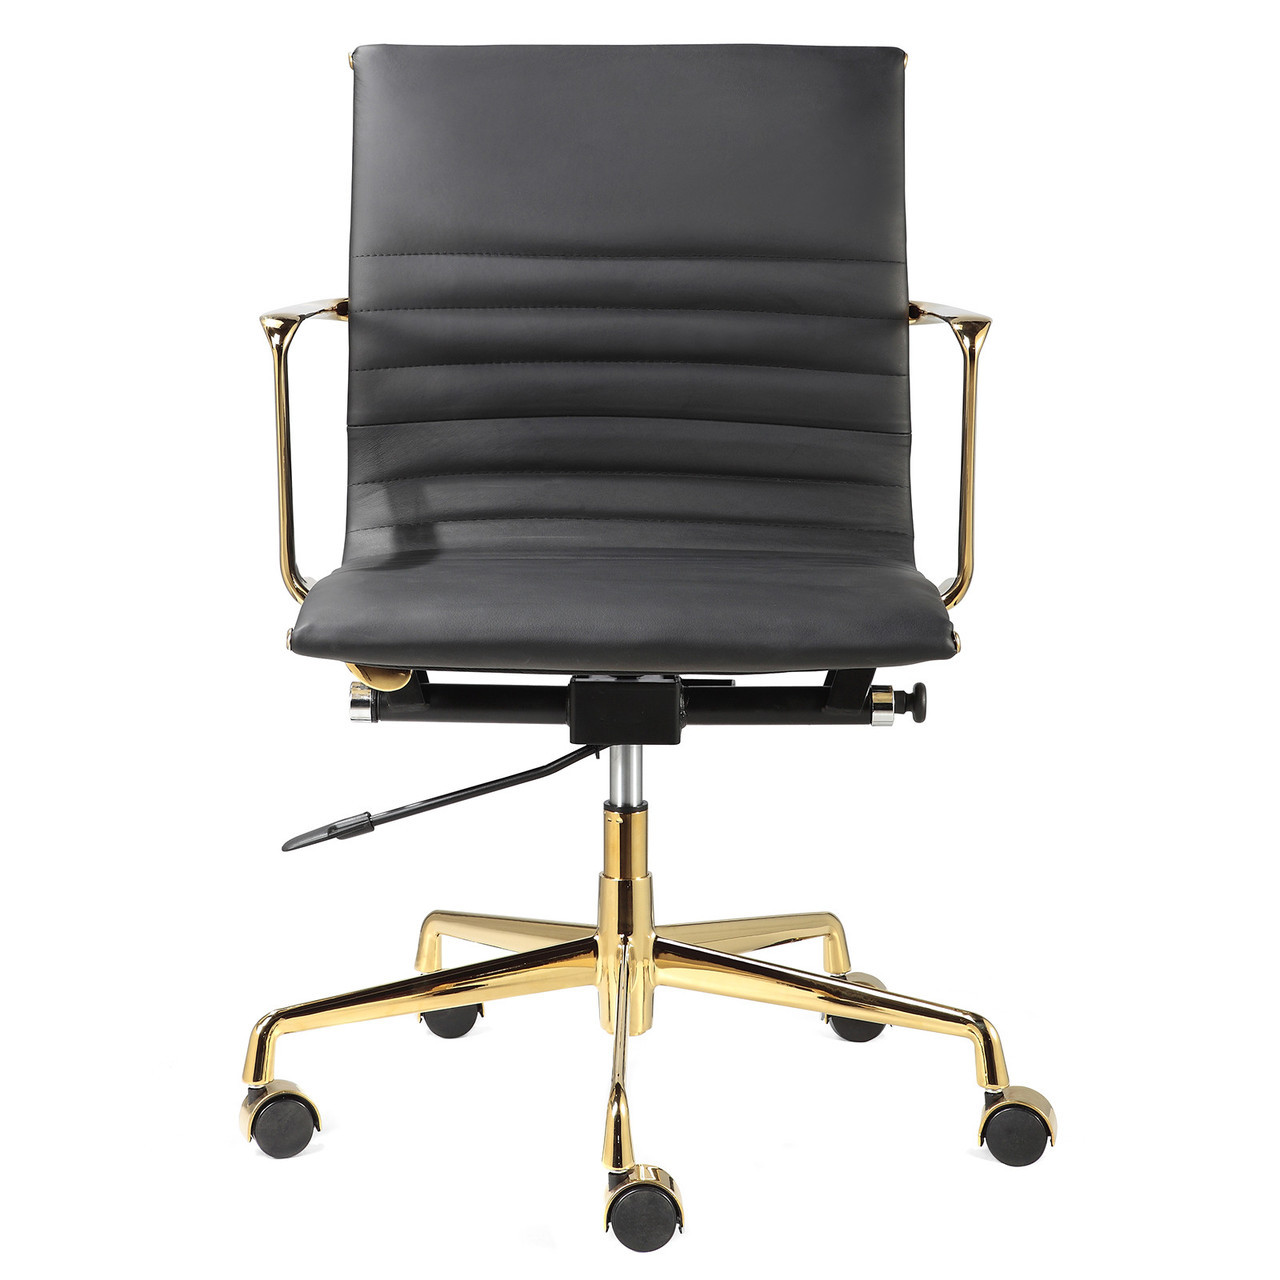 Dorado Office Chair Black Italian Leather 43 Gold M346 Modern Office Chairs